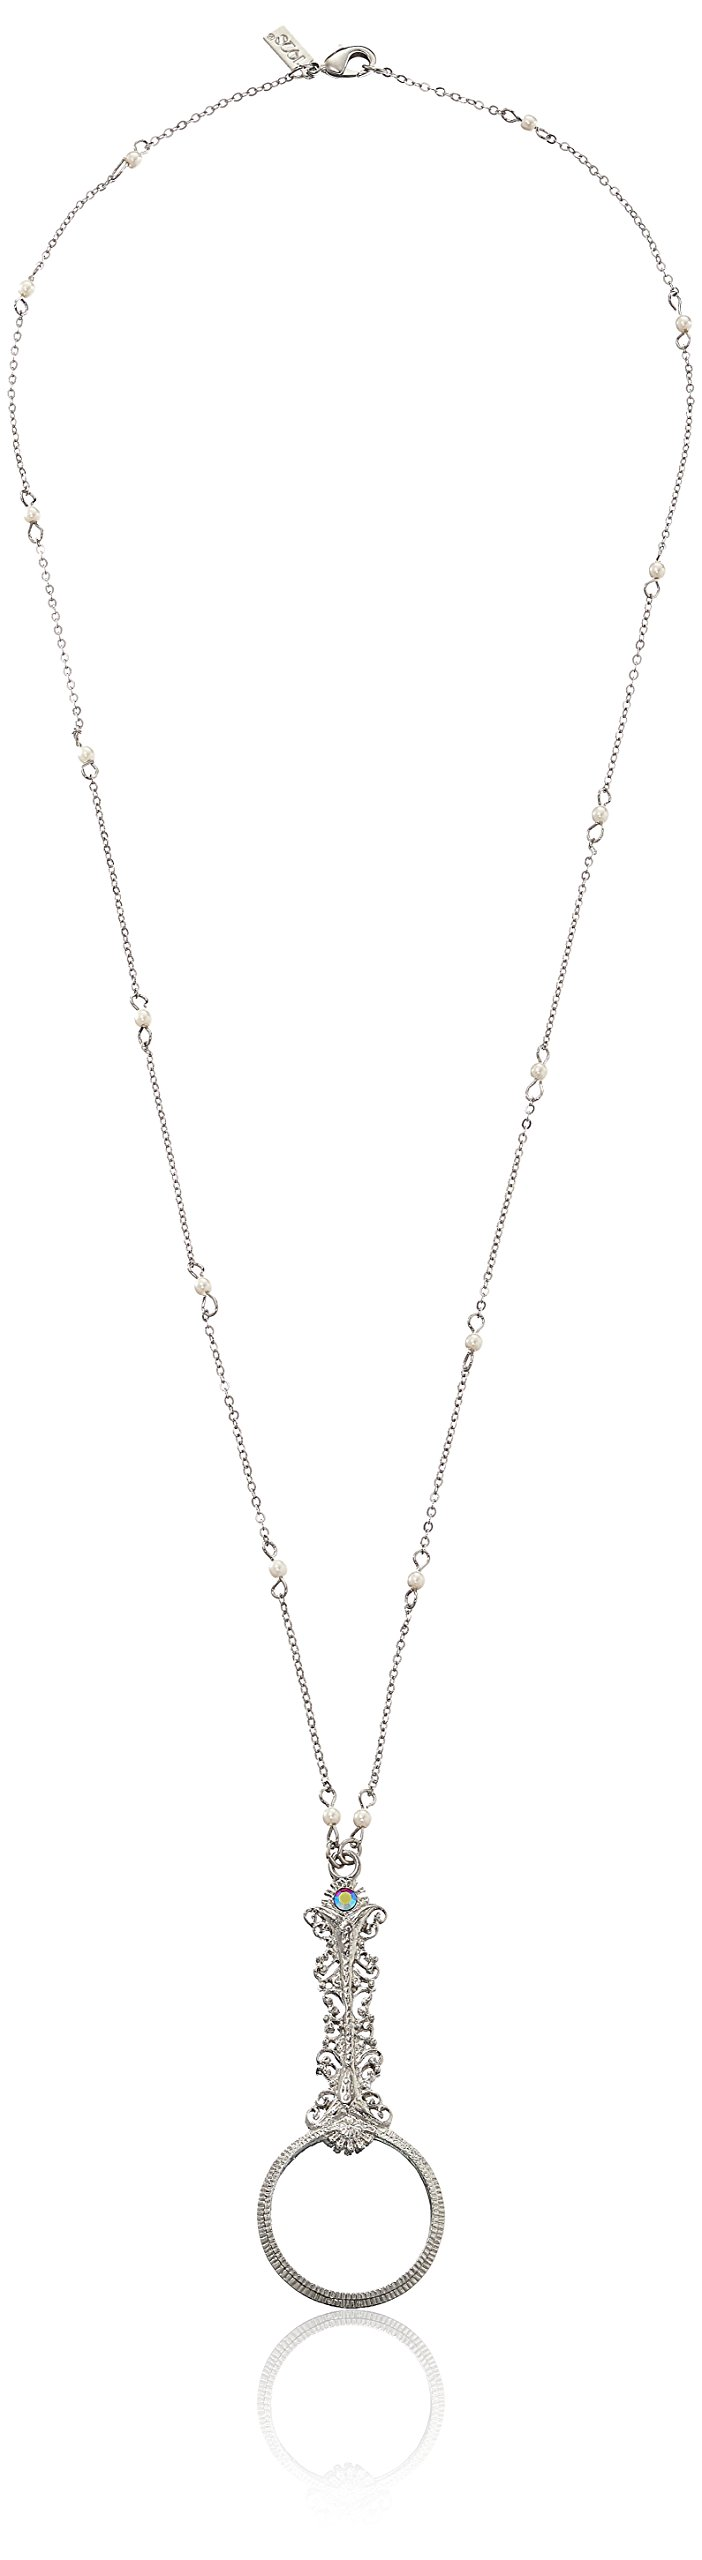 1928 Jewelry Silver-Tone Magnifying Glass with Crystal AB Accent Necklace, 28''